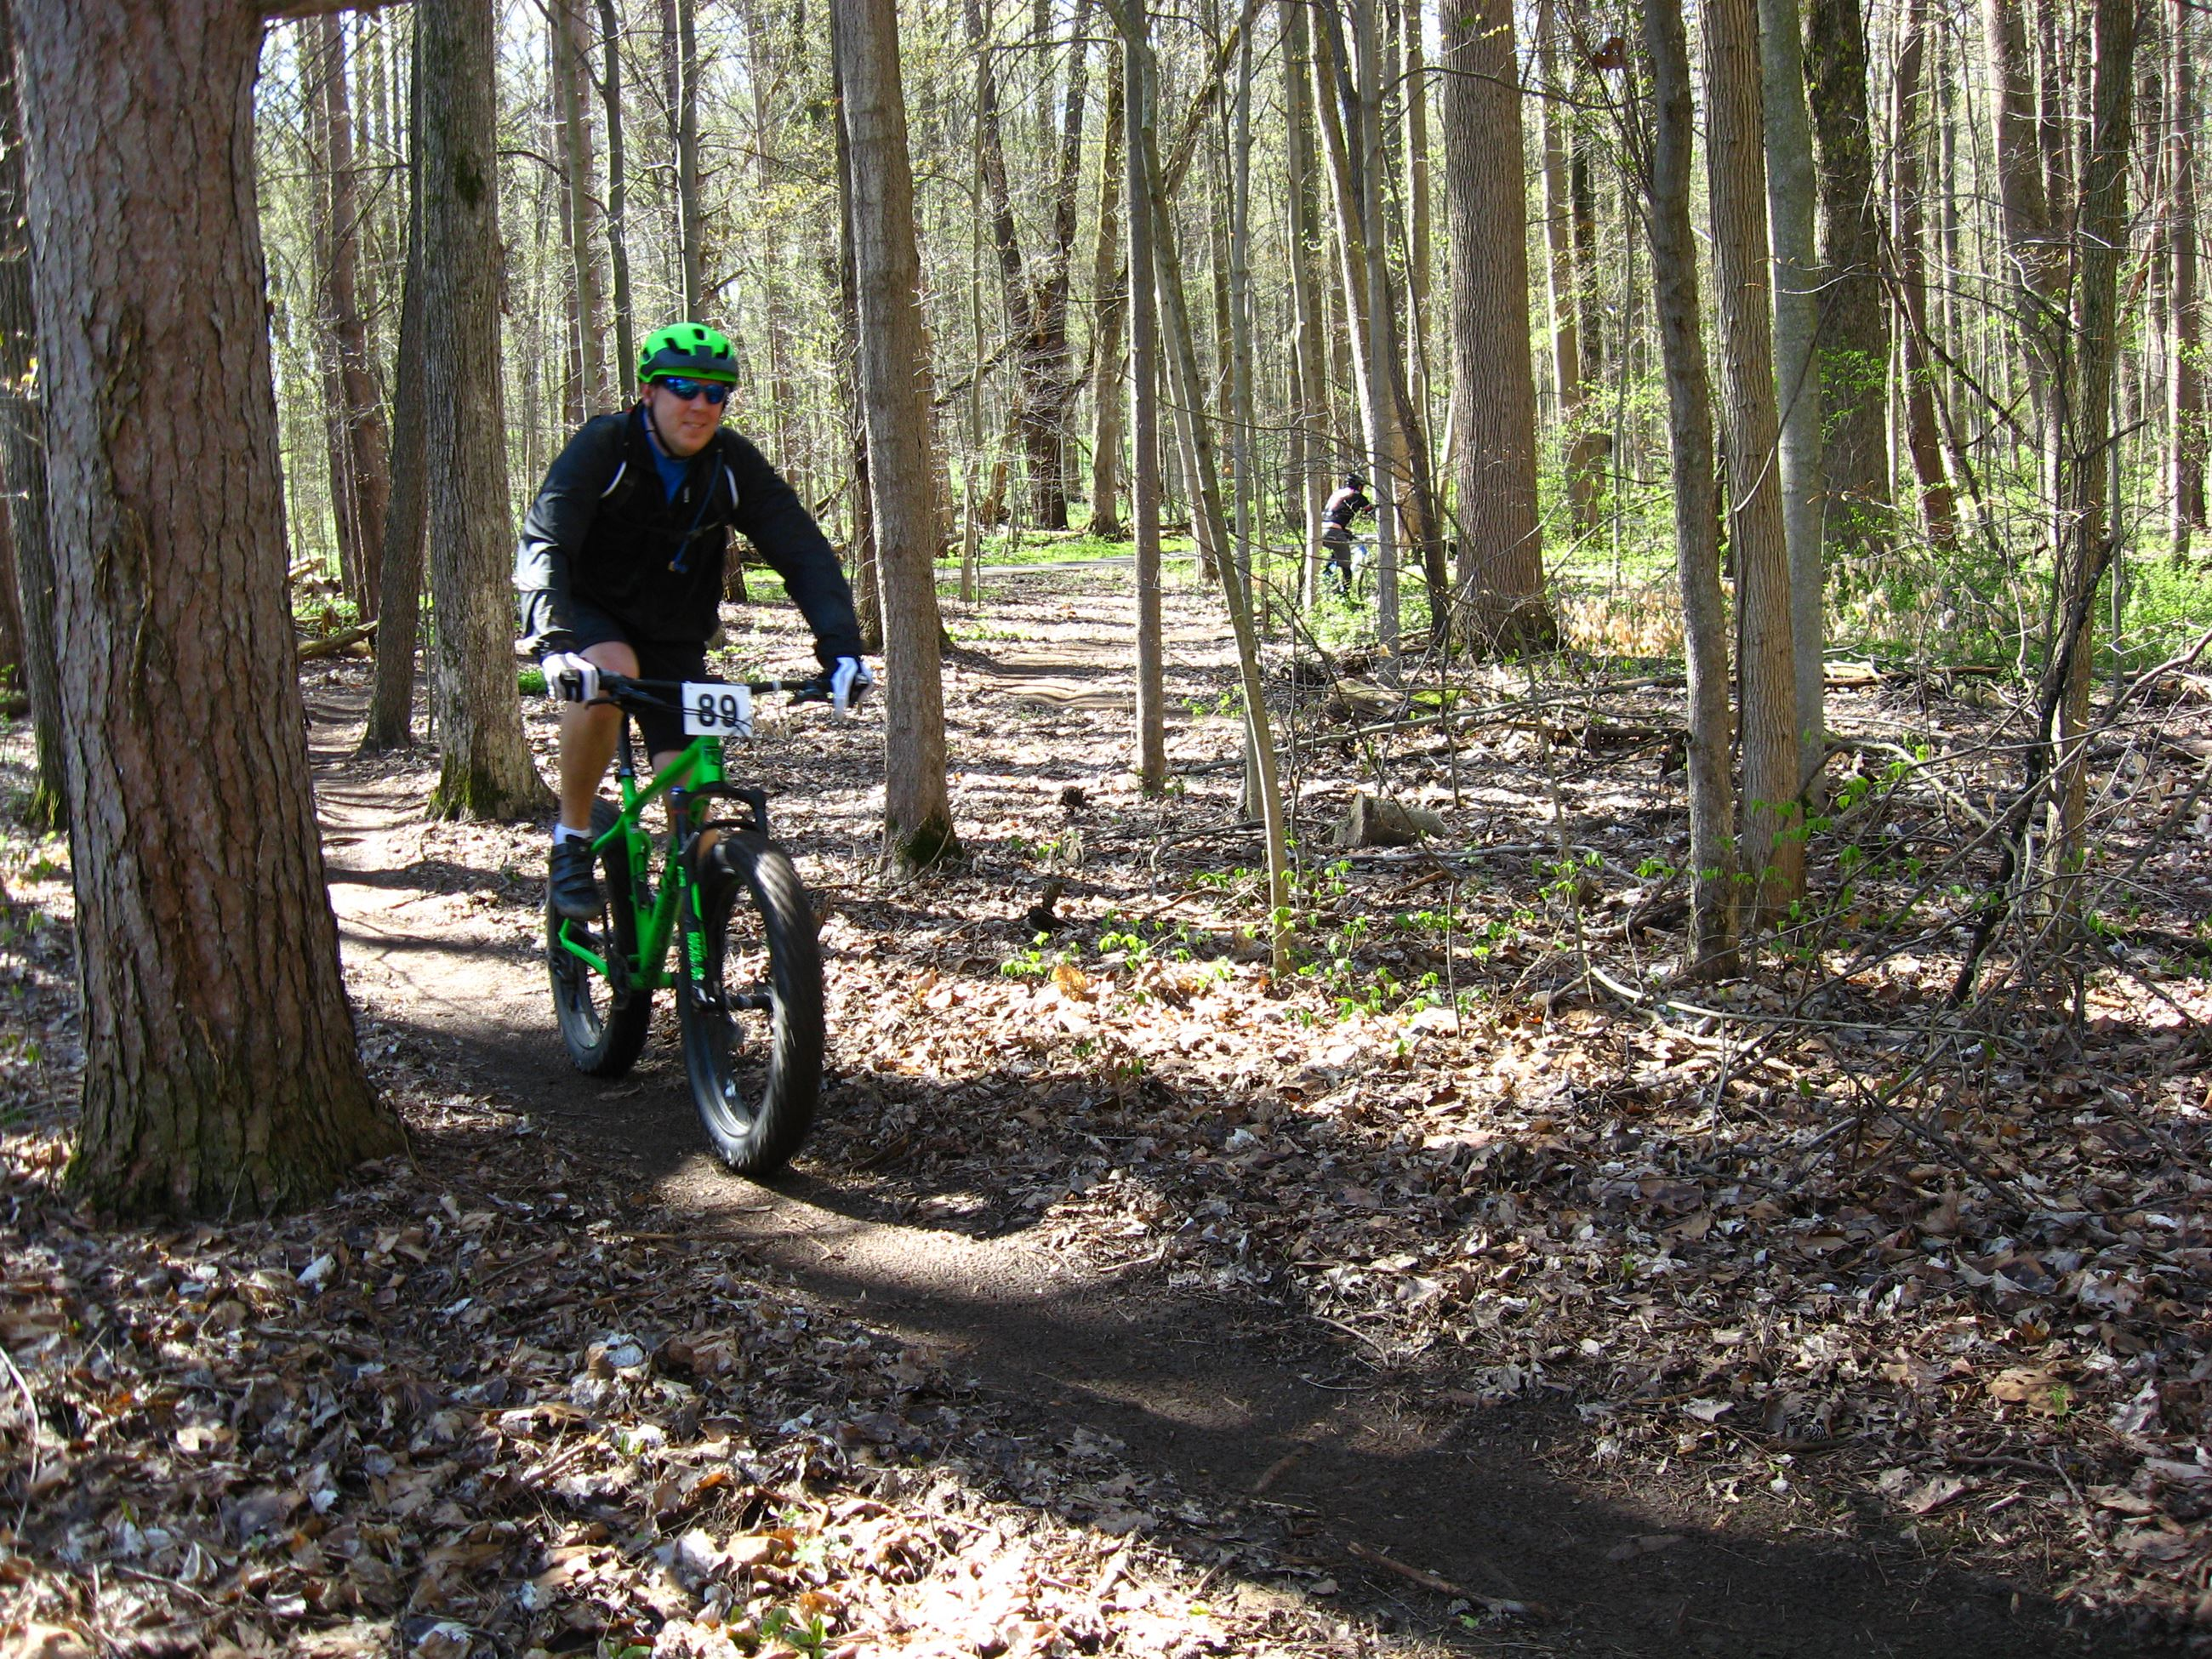 Riding the Mountain bike trail at Bendix Woods Co Park